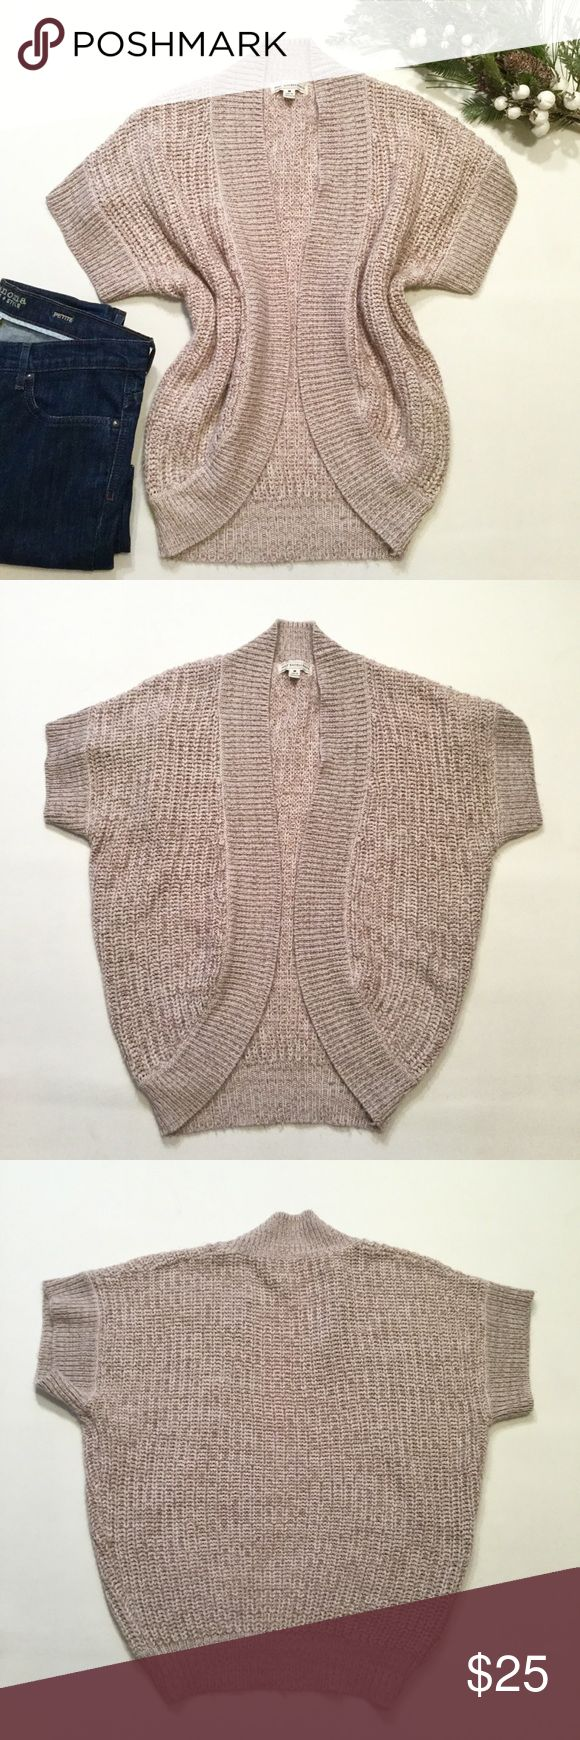 "Cocoon Cardigan Size medium. Tan color. Length approx 26"". Acrylic Poof Excellence Sweaters Cardigans"